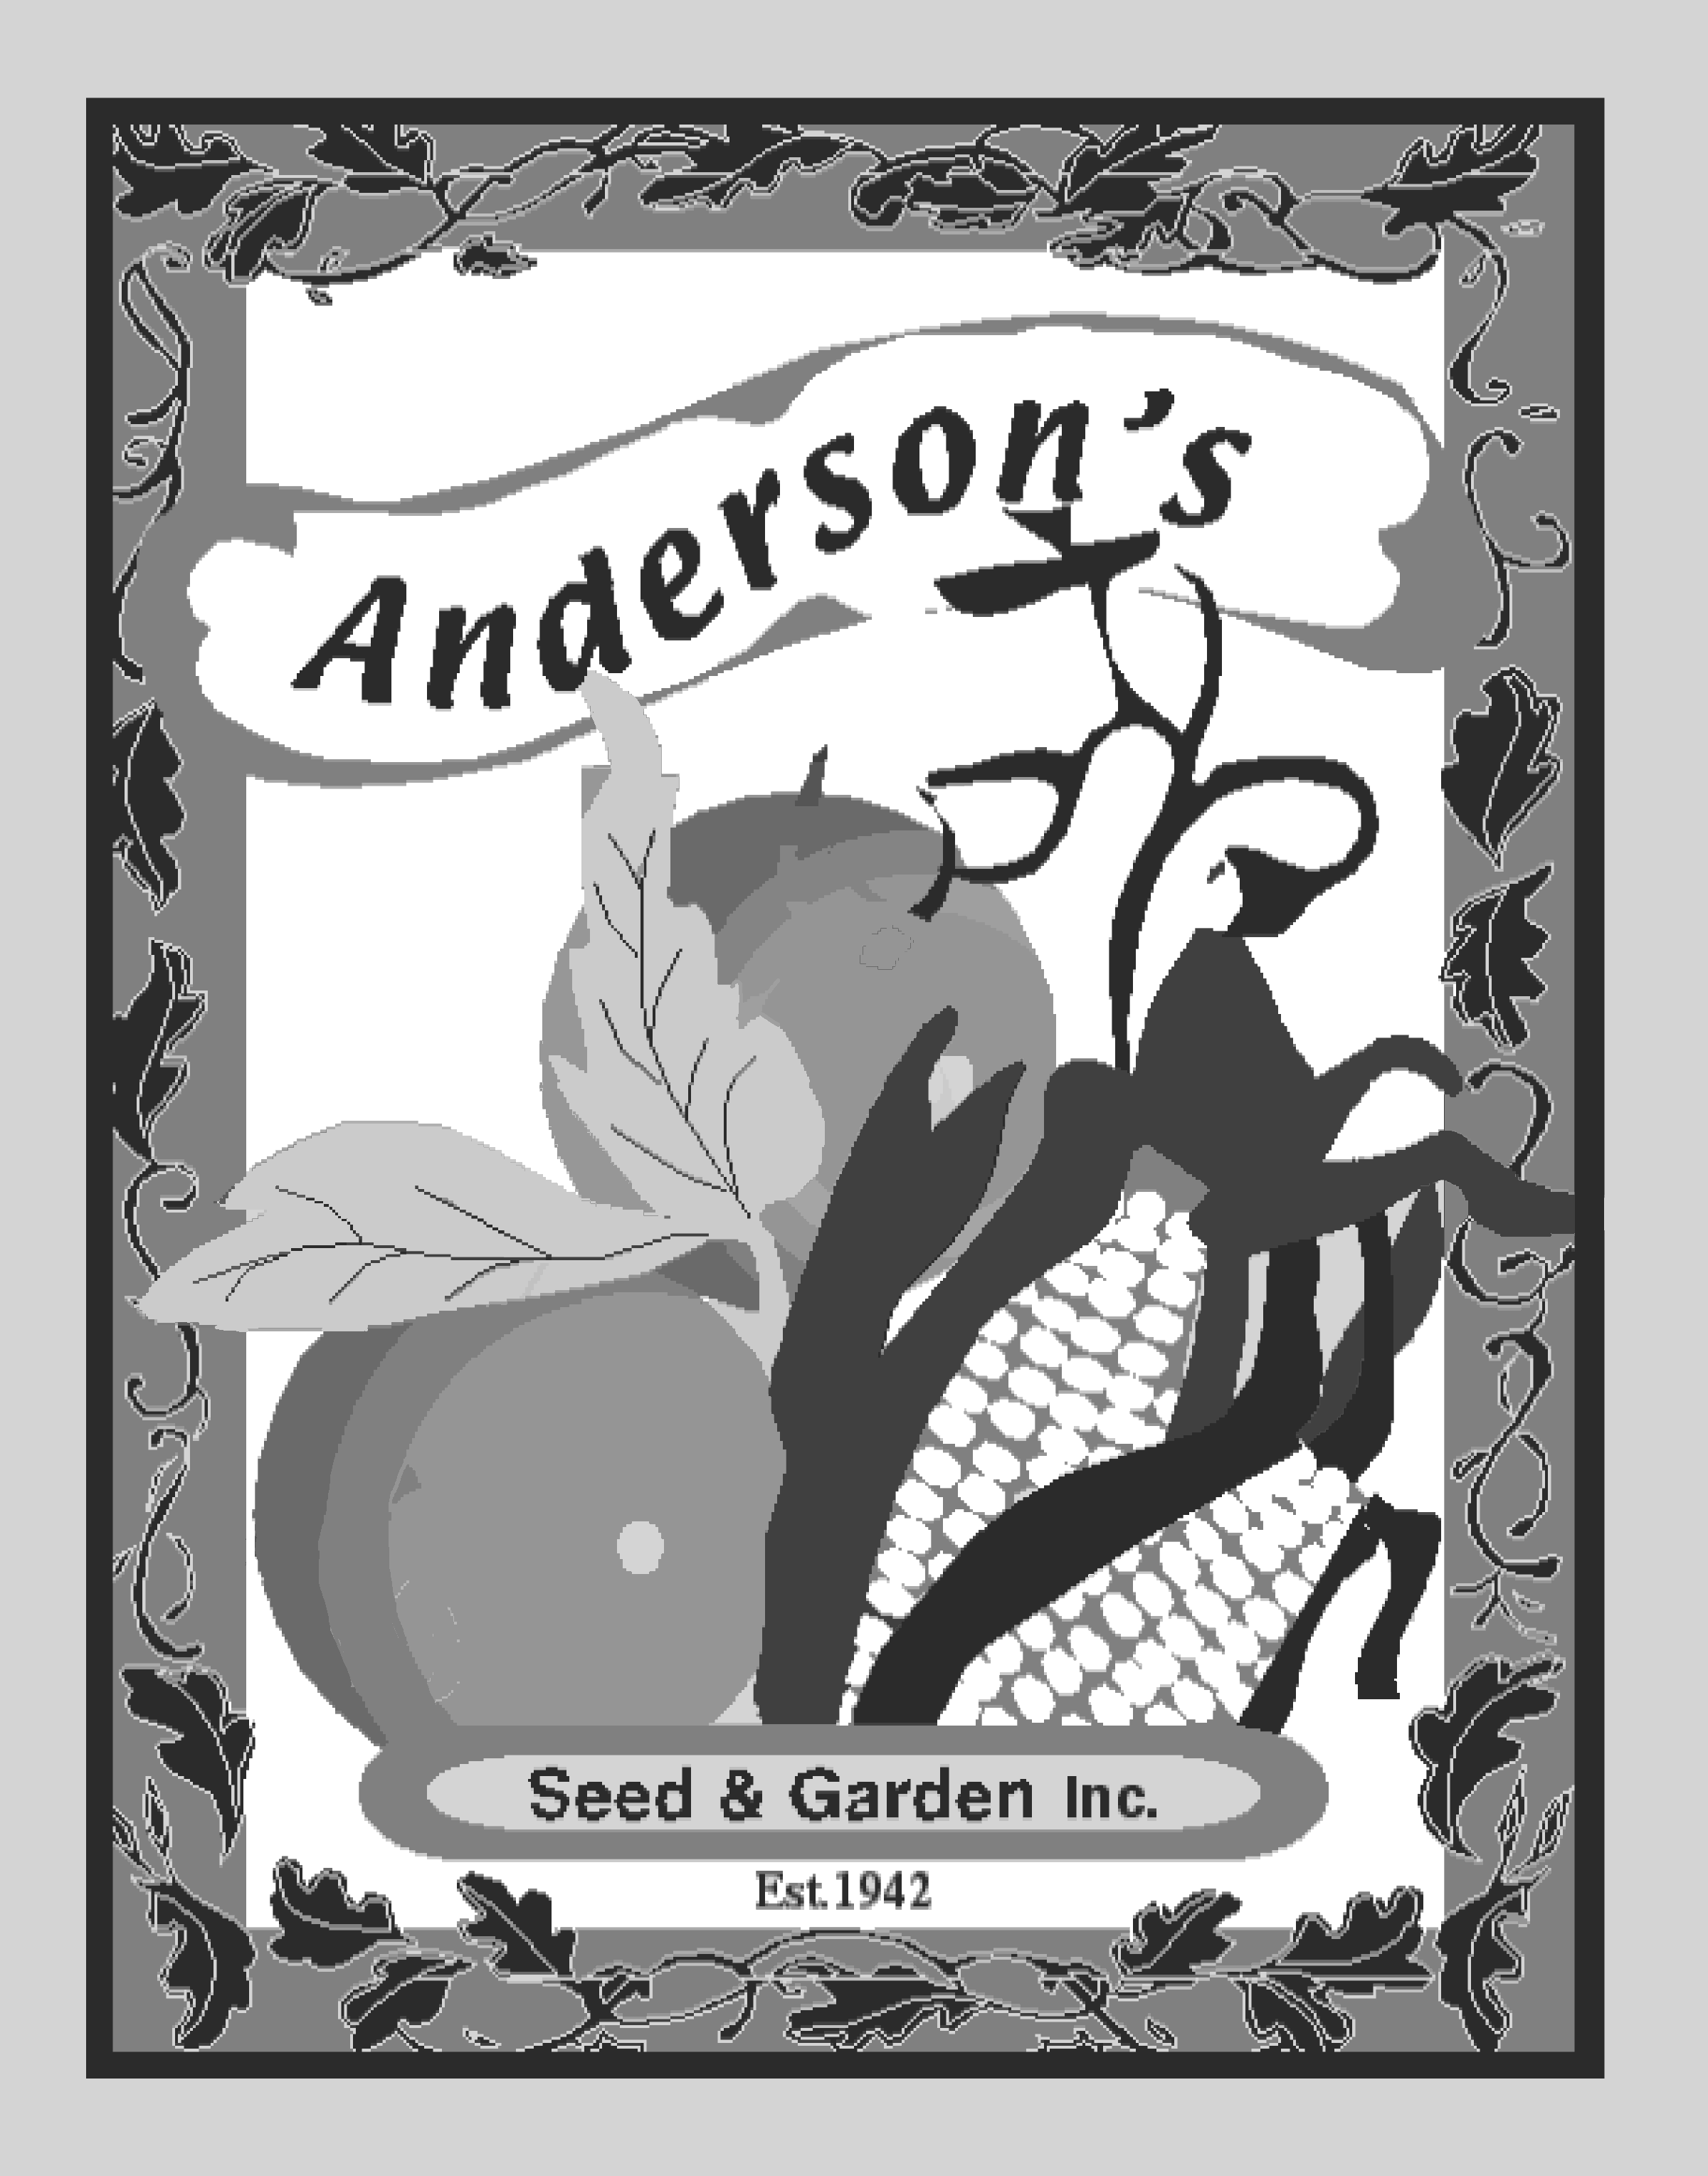 Mary Washington Heirloom Asparagus Seed 1 oz.